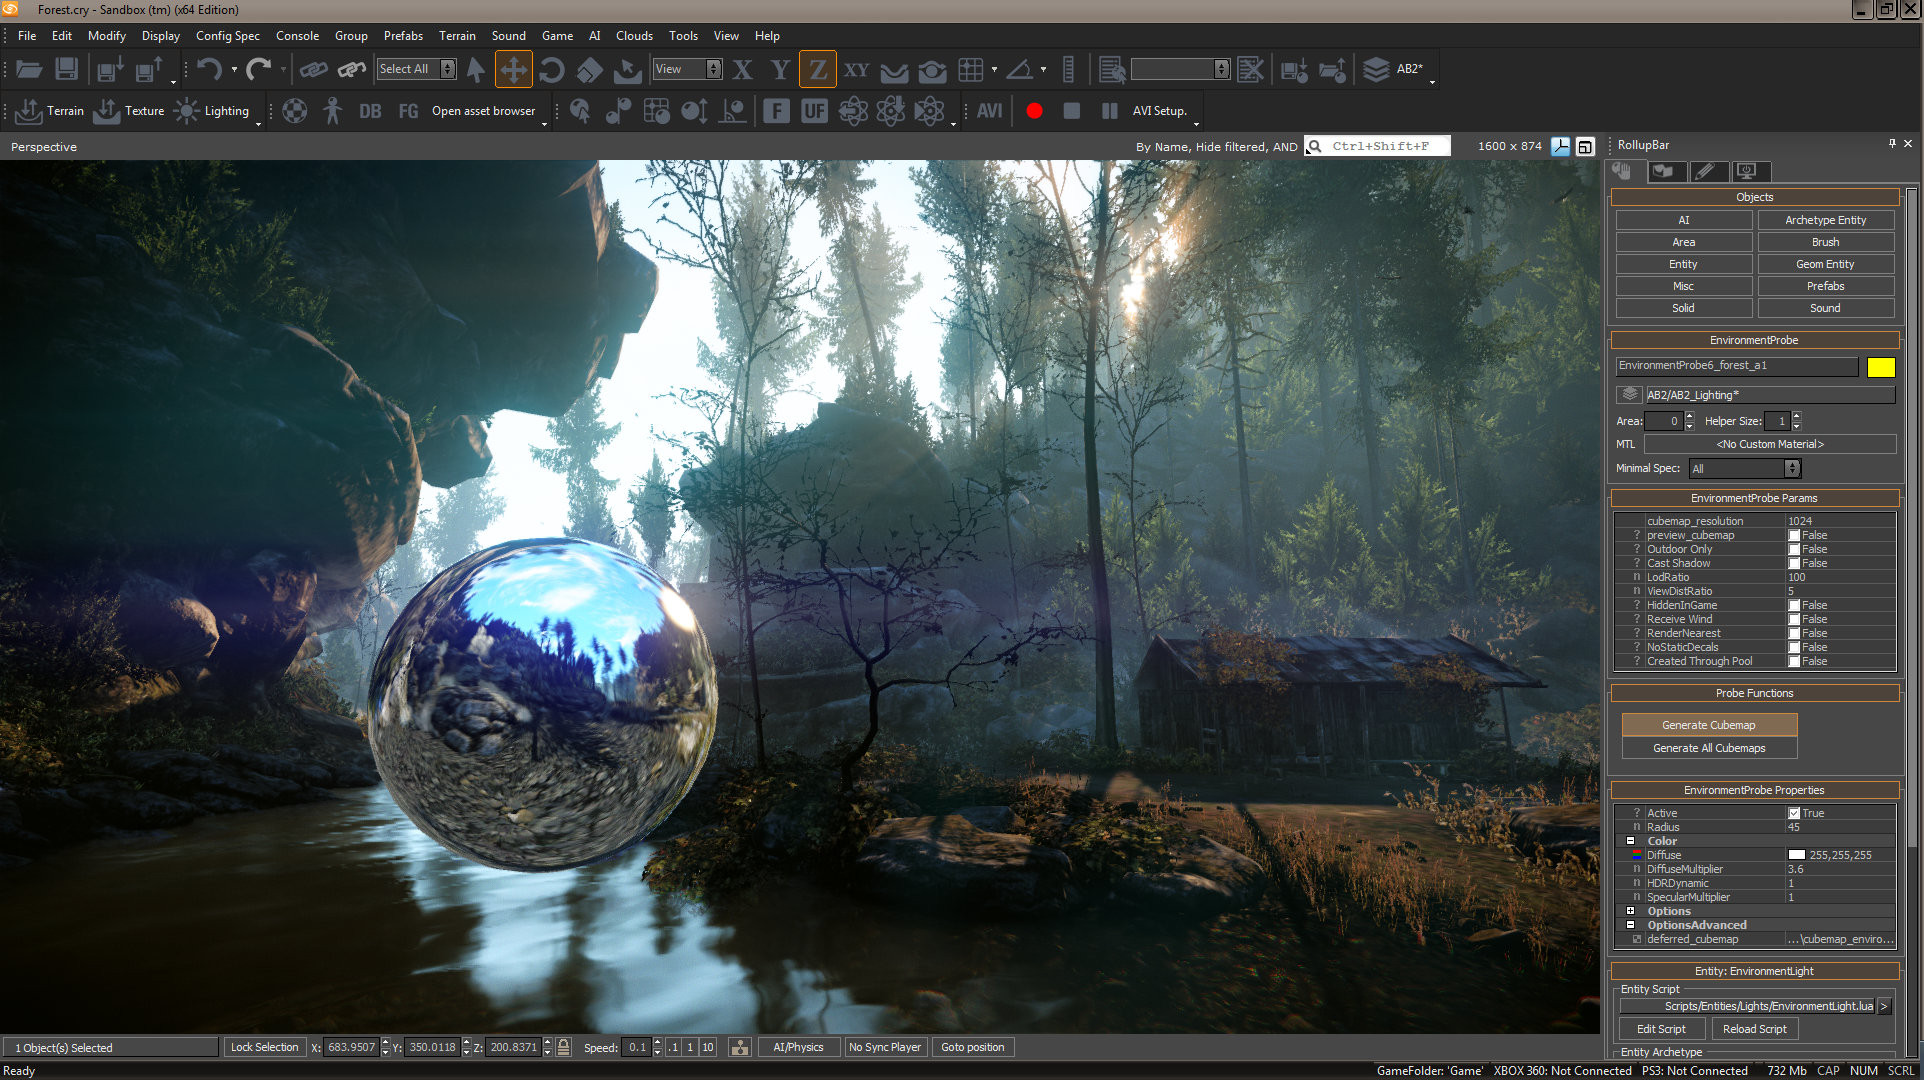 Crytek to Unveil CryEngine 3 for Linux at GDC'14 | TechPowerUp